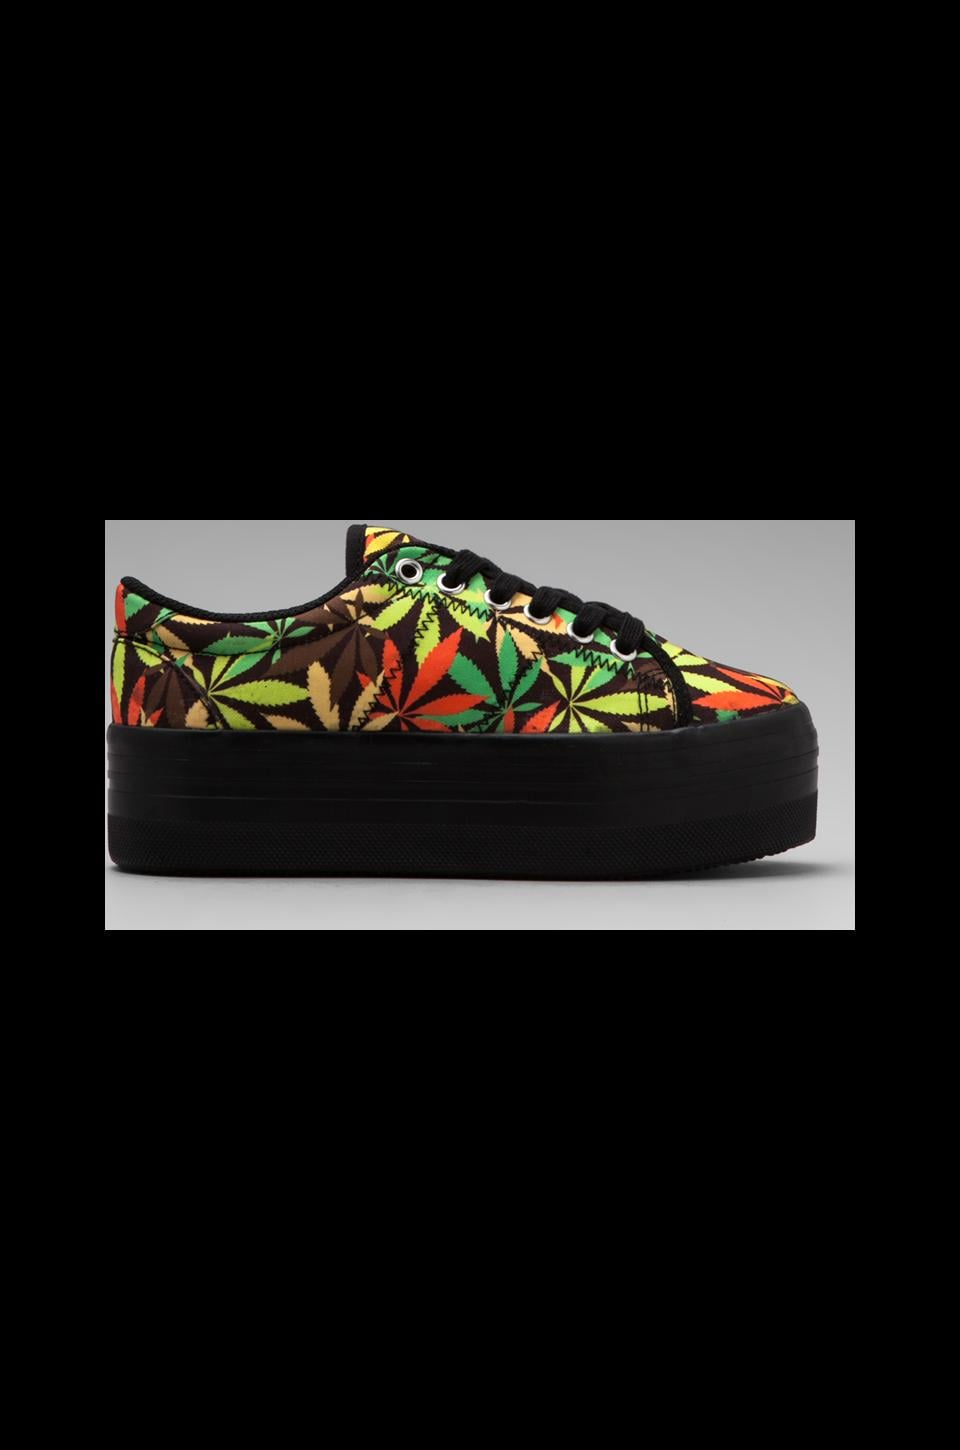 Jeffrey Campbell Platform Sneakers in Leaves